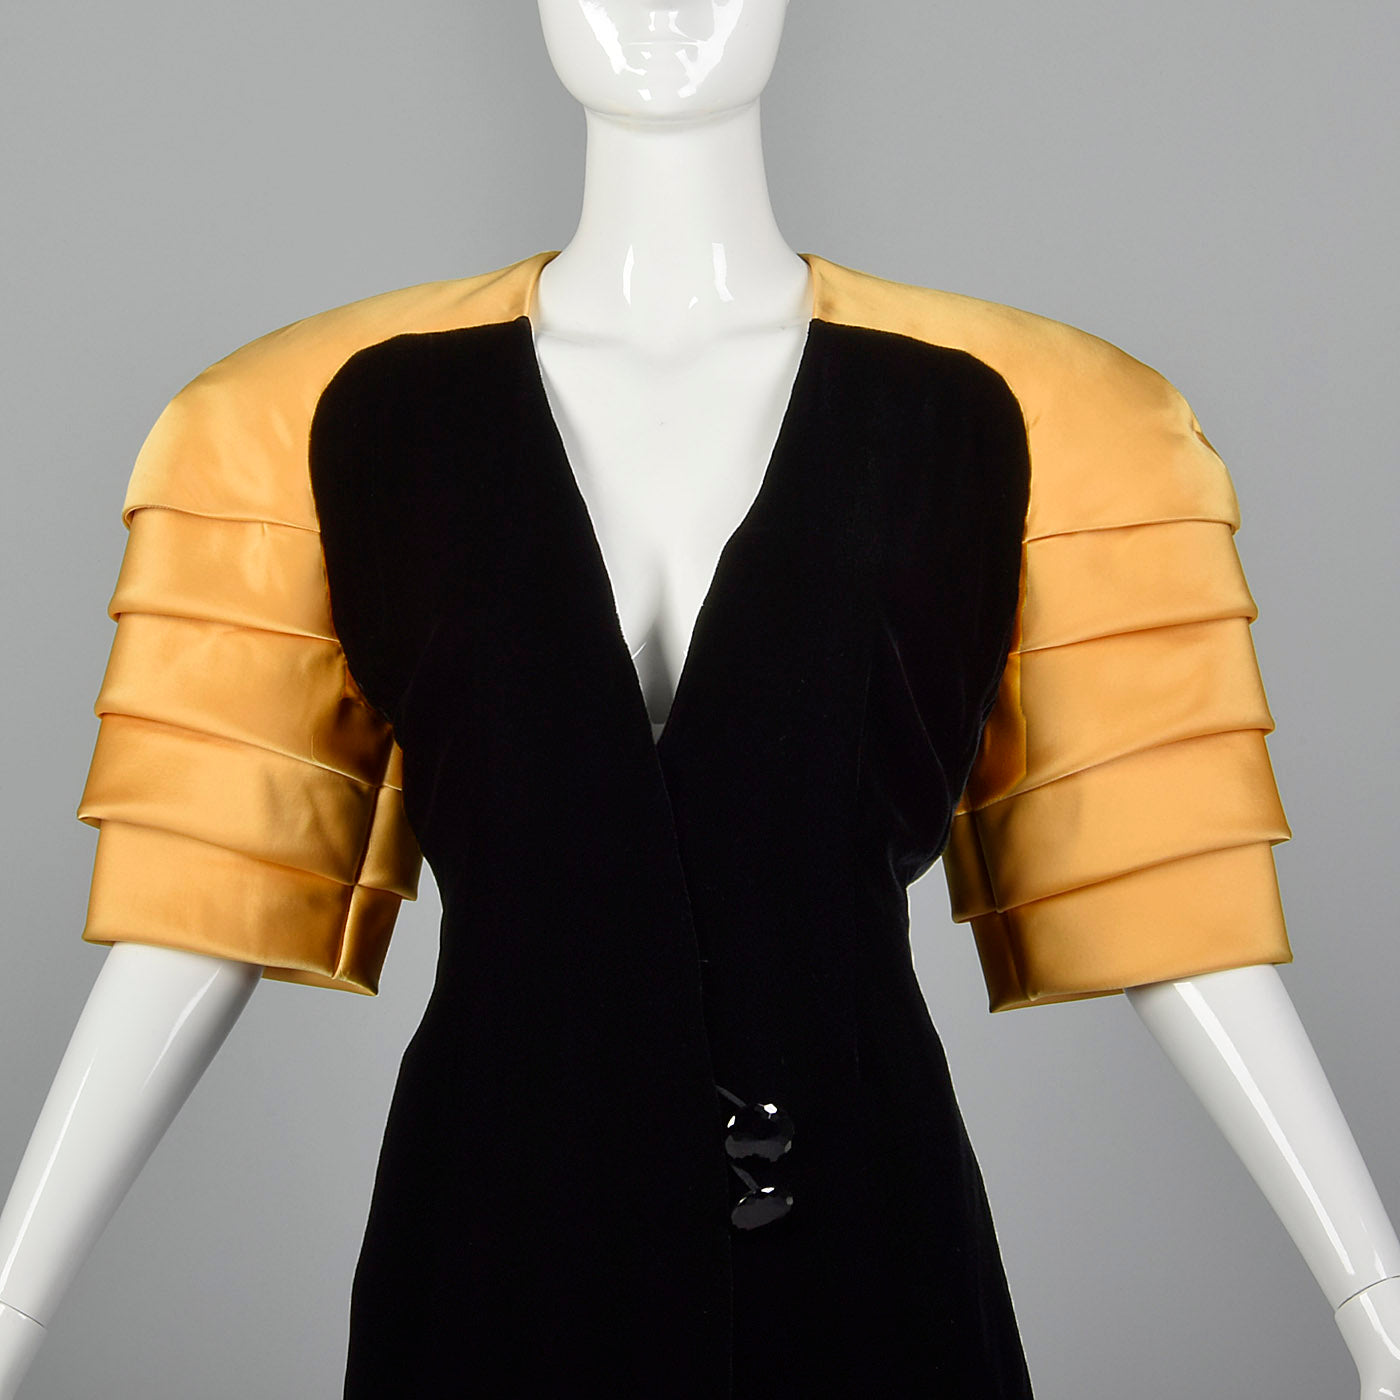 1980s Ingrid Luhn Black Velvet Skirt Suit with Gold Shoulders